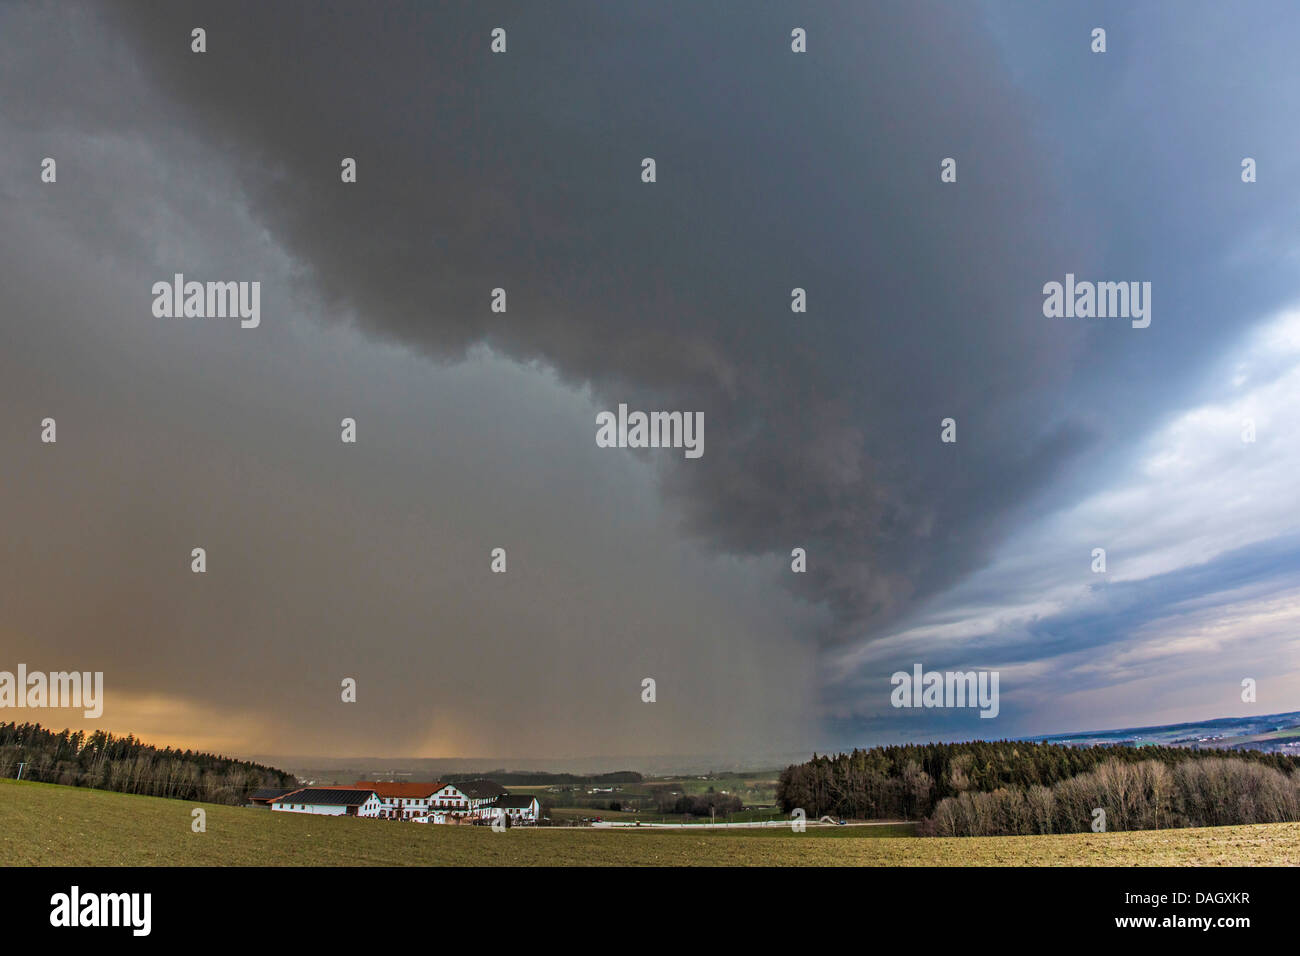 dramatical storm front with heavy rain tracking over river valley, Germany, Bavaria, Isental - Stock Image